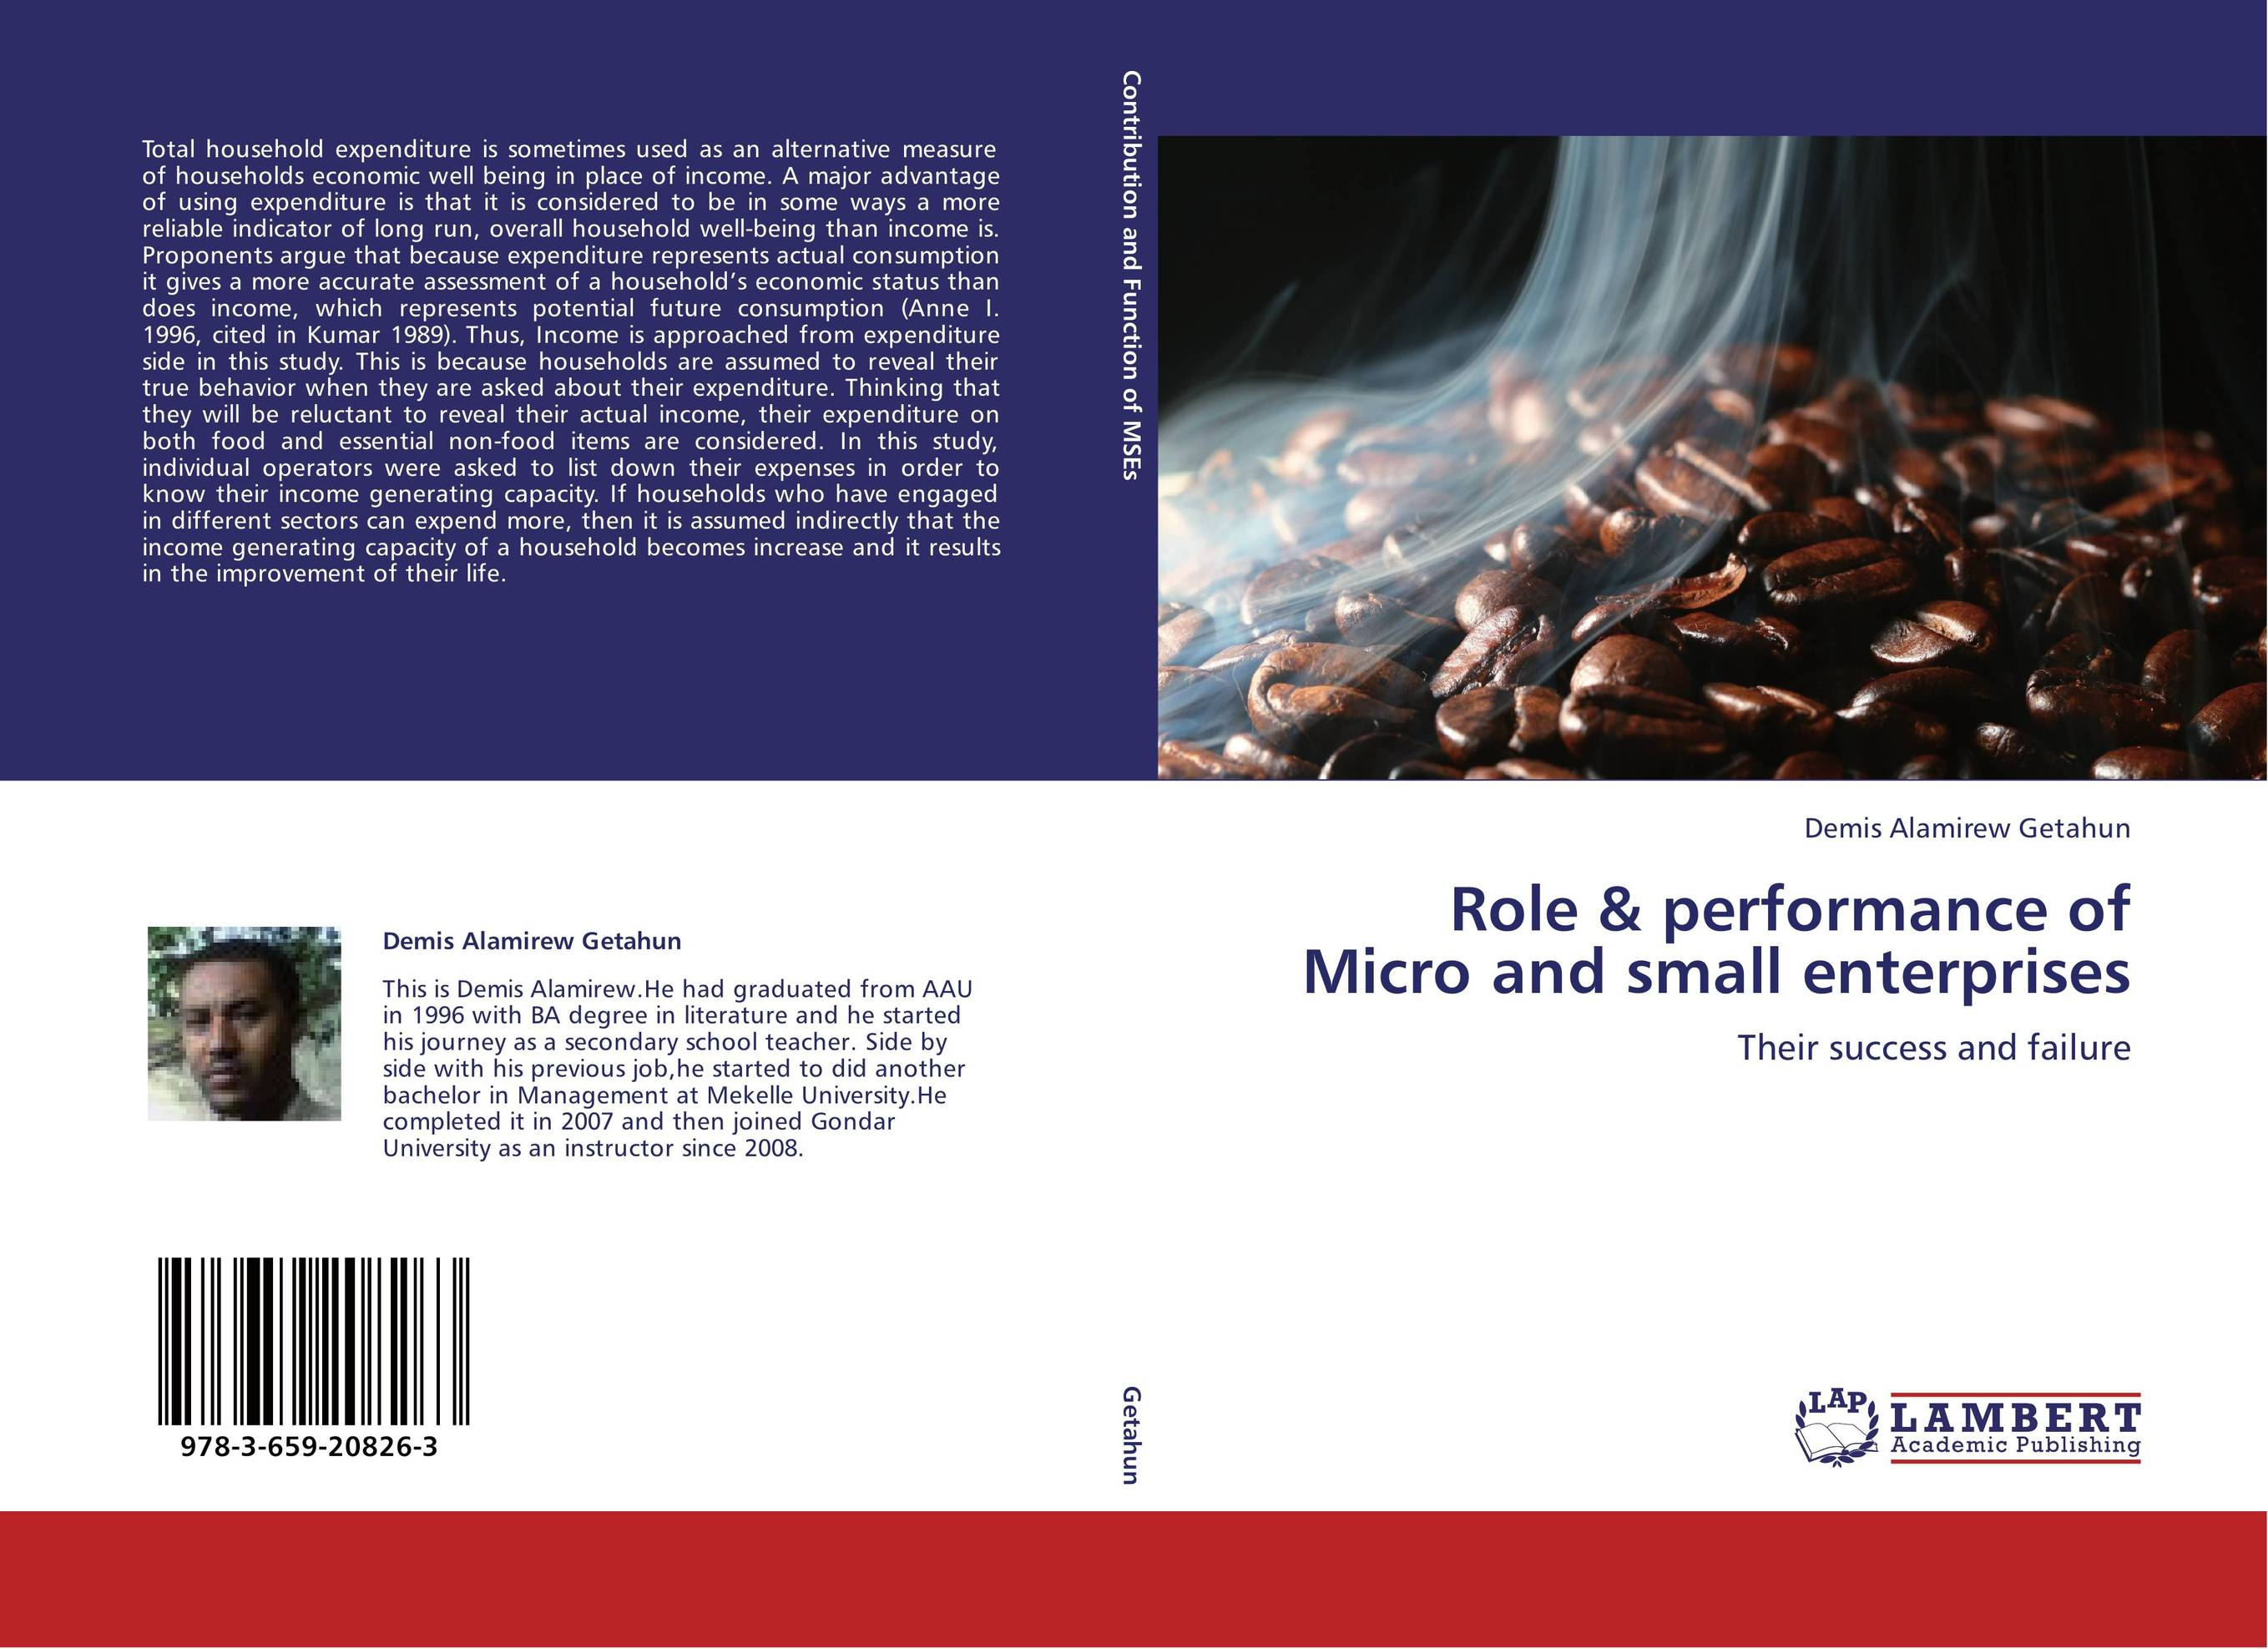 Role & performance of Micro and small enterprises